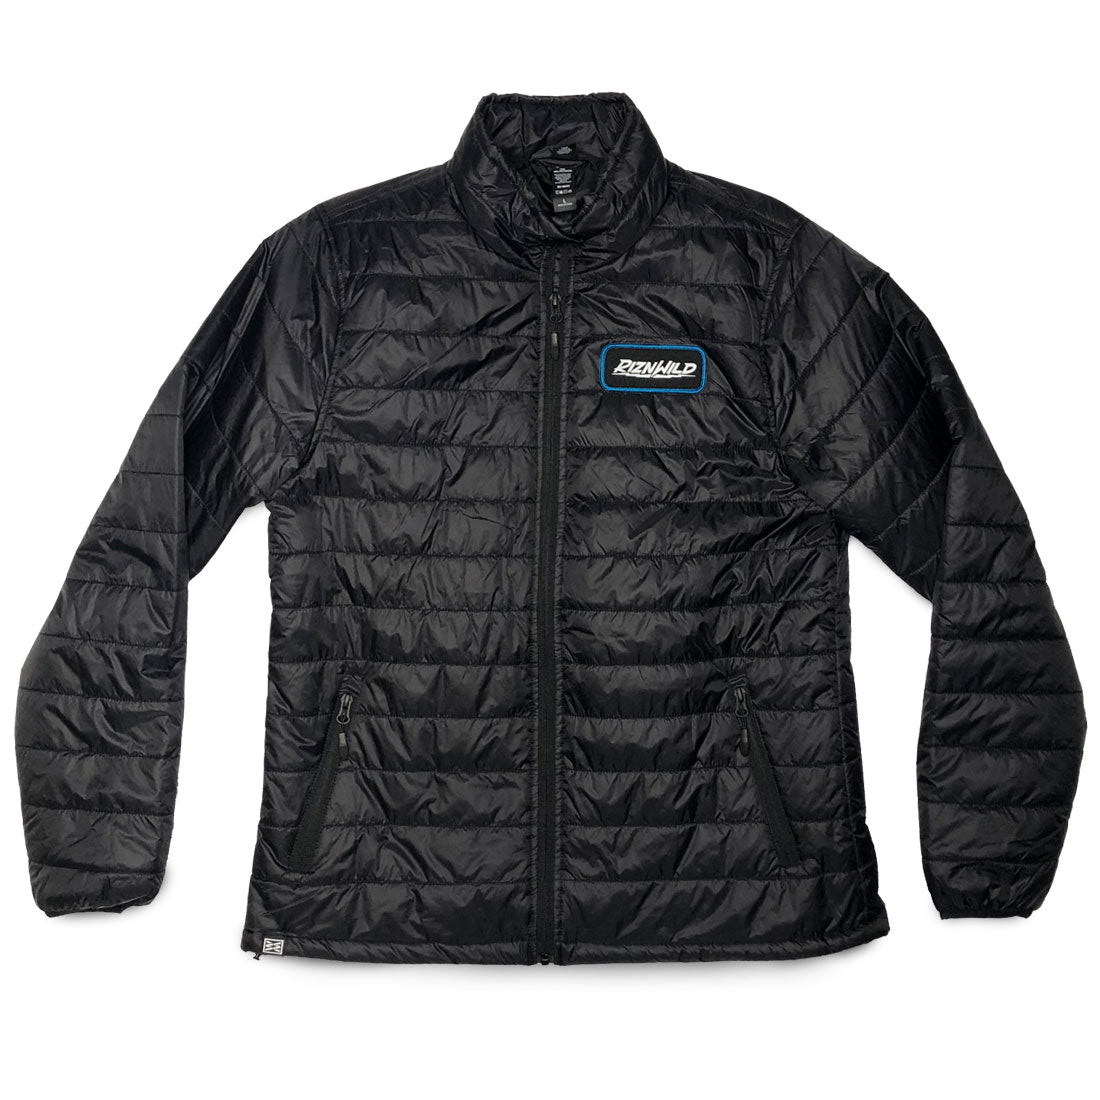 RIZNWILD | Women's black puffer jacket